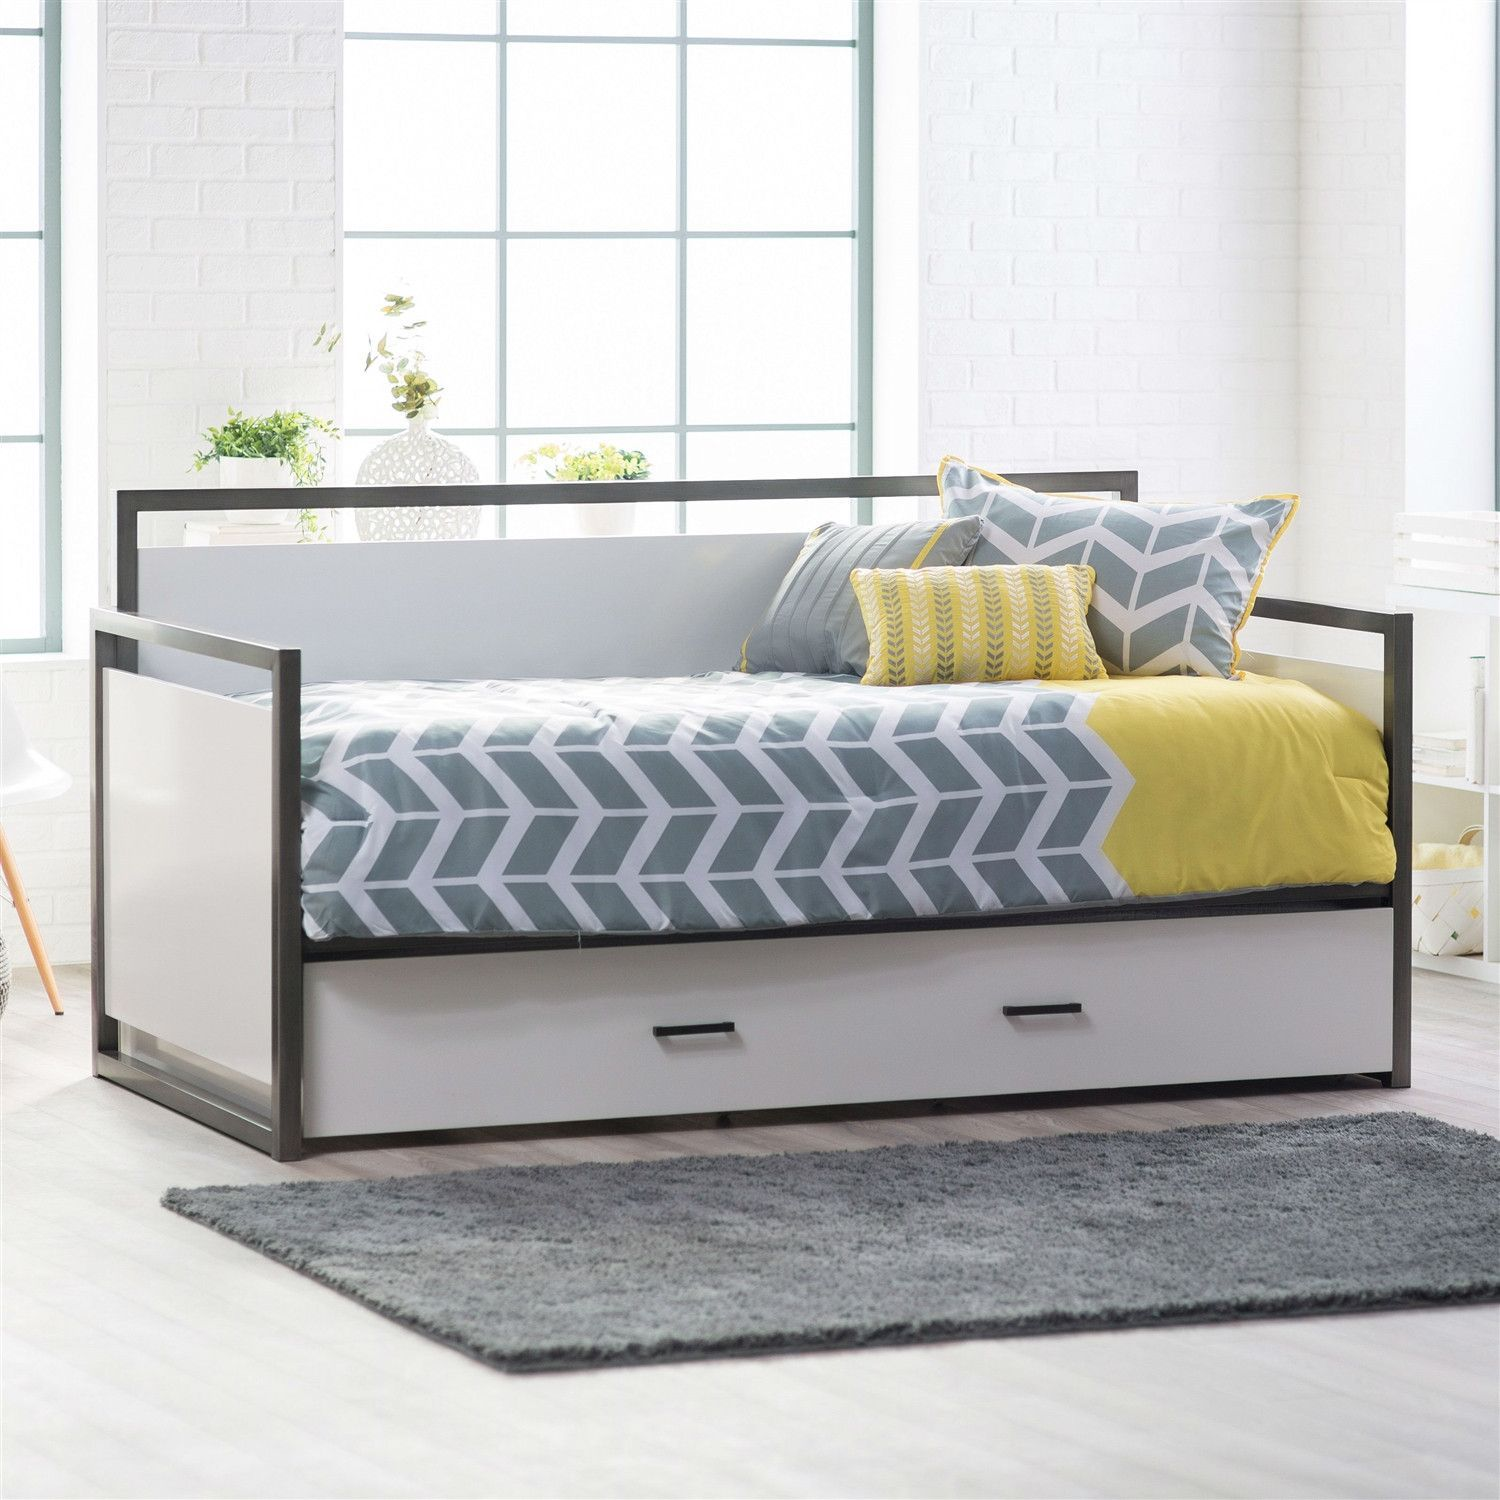 Twin Size Modern Metal Frame Daybed With Pull Out Trundle Bed In